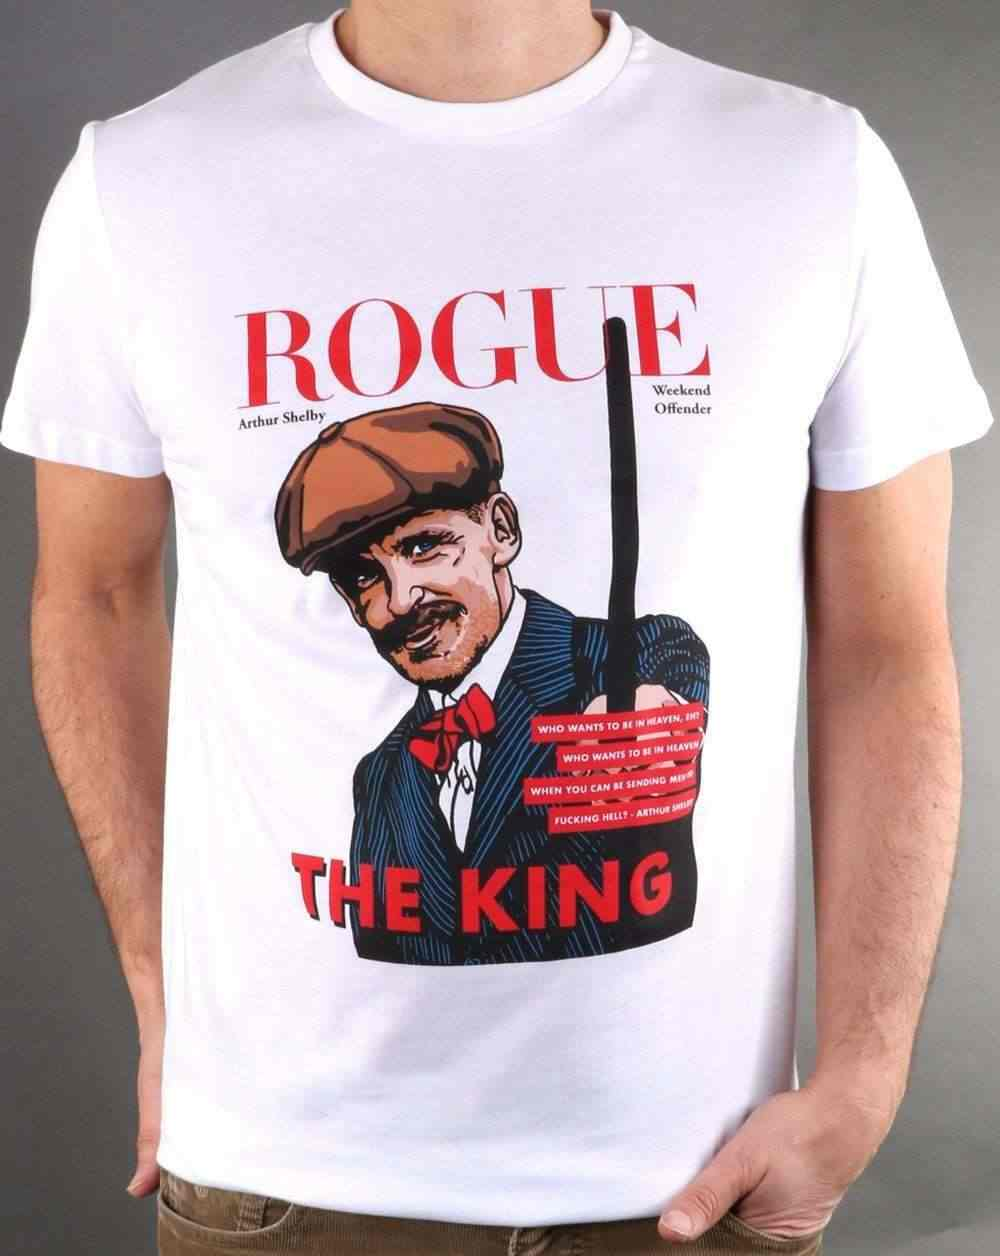 Weekend Offender Rogue Arthur T Shirt in White - Peaky Blinders   Cartoon t shirt men Unisex New Fashion tshirt Loose Size